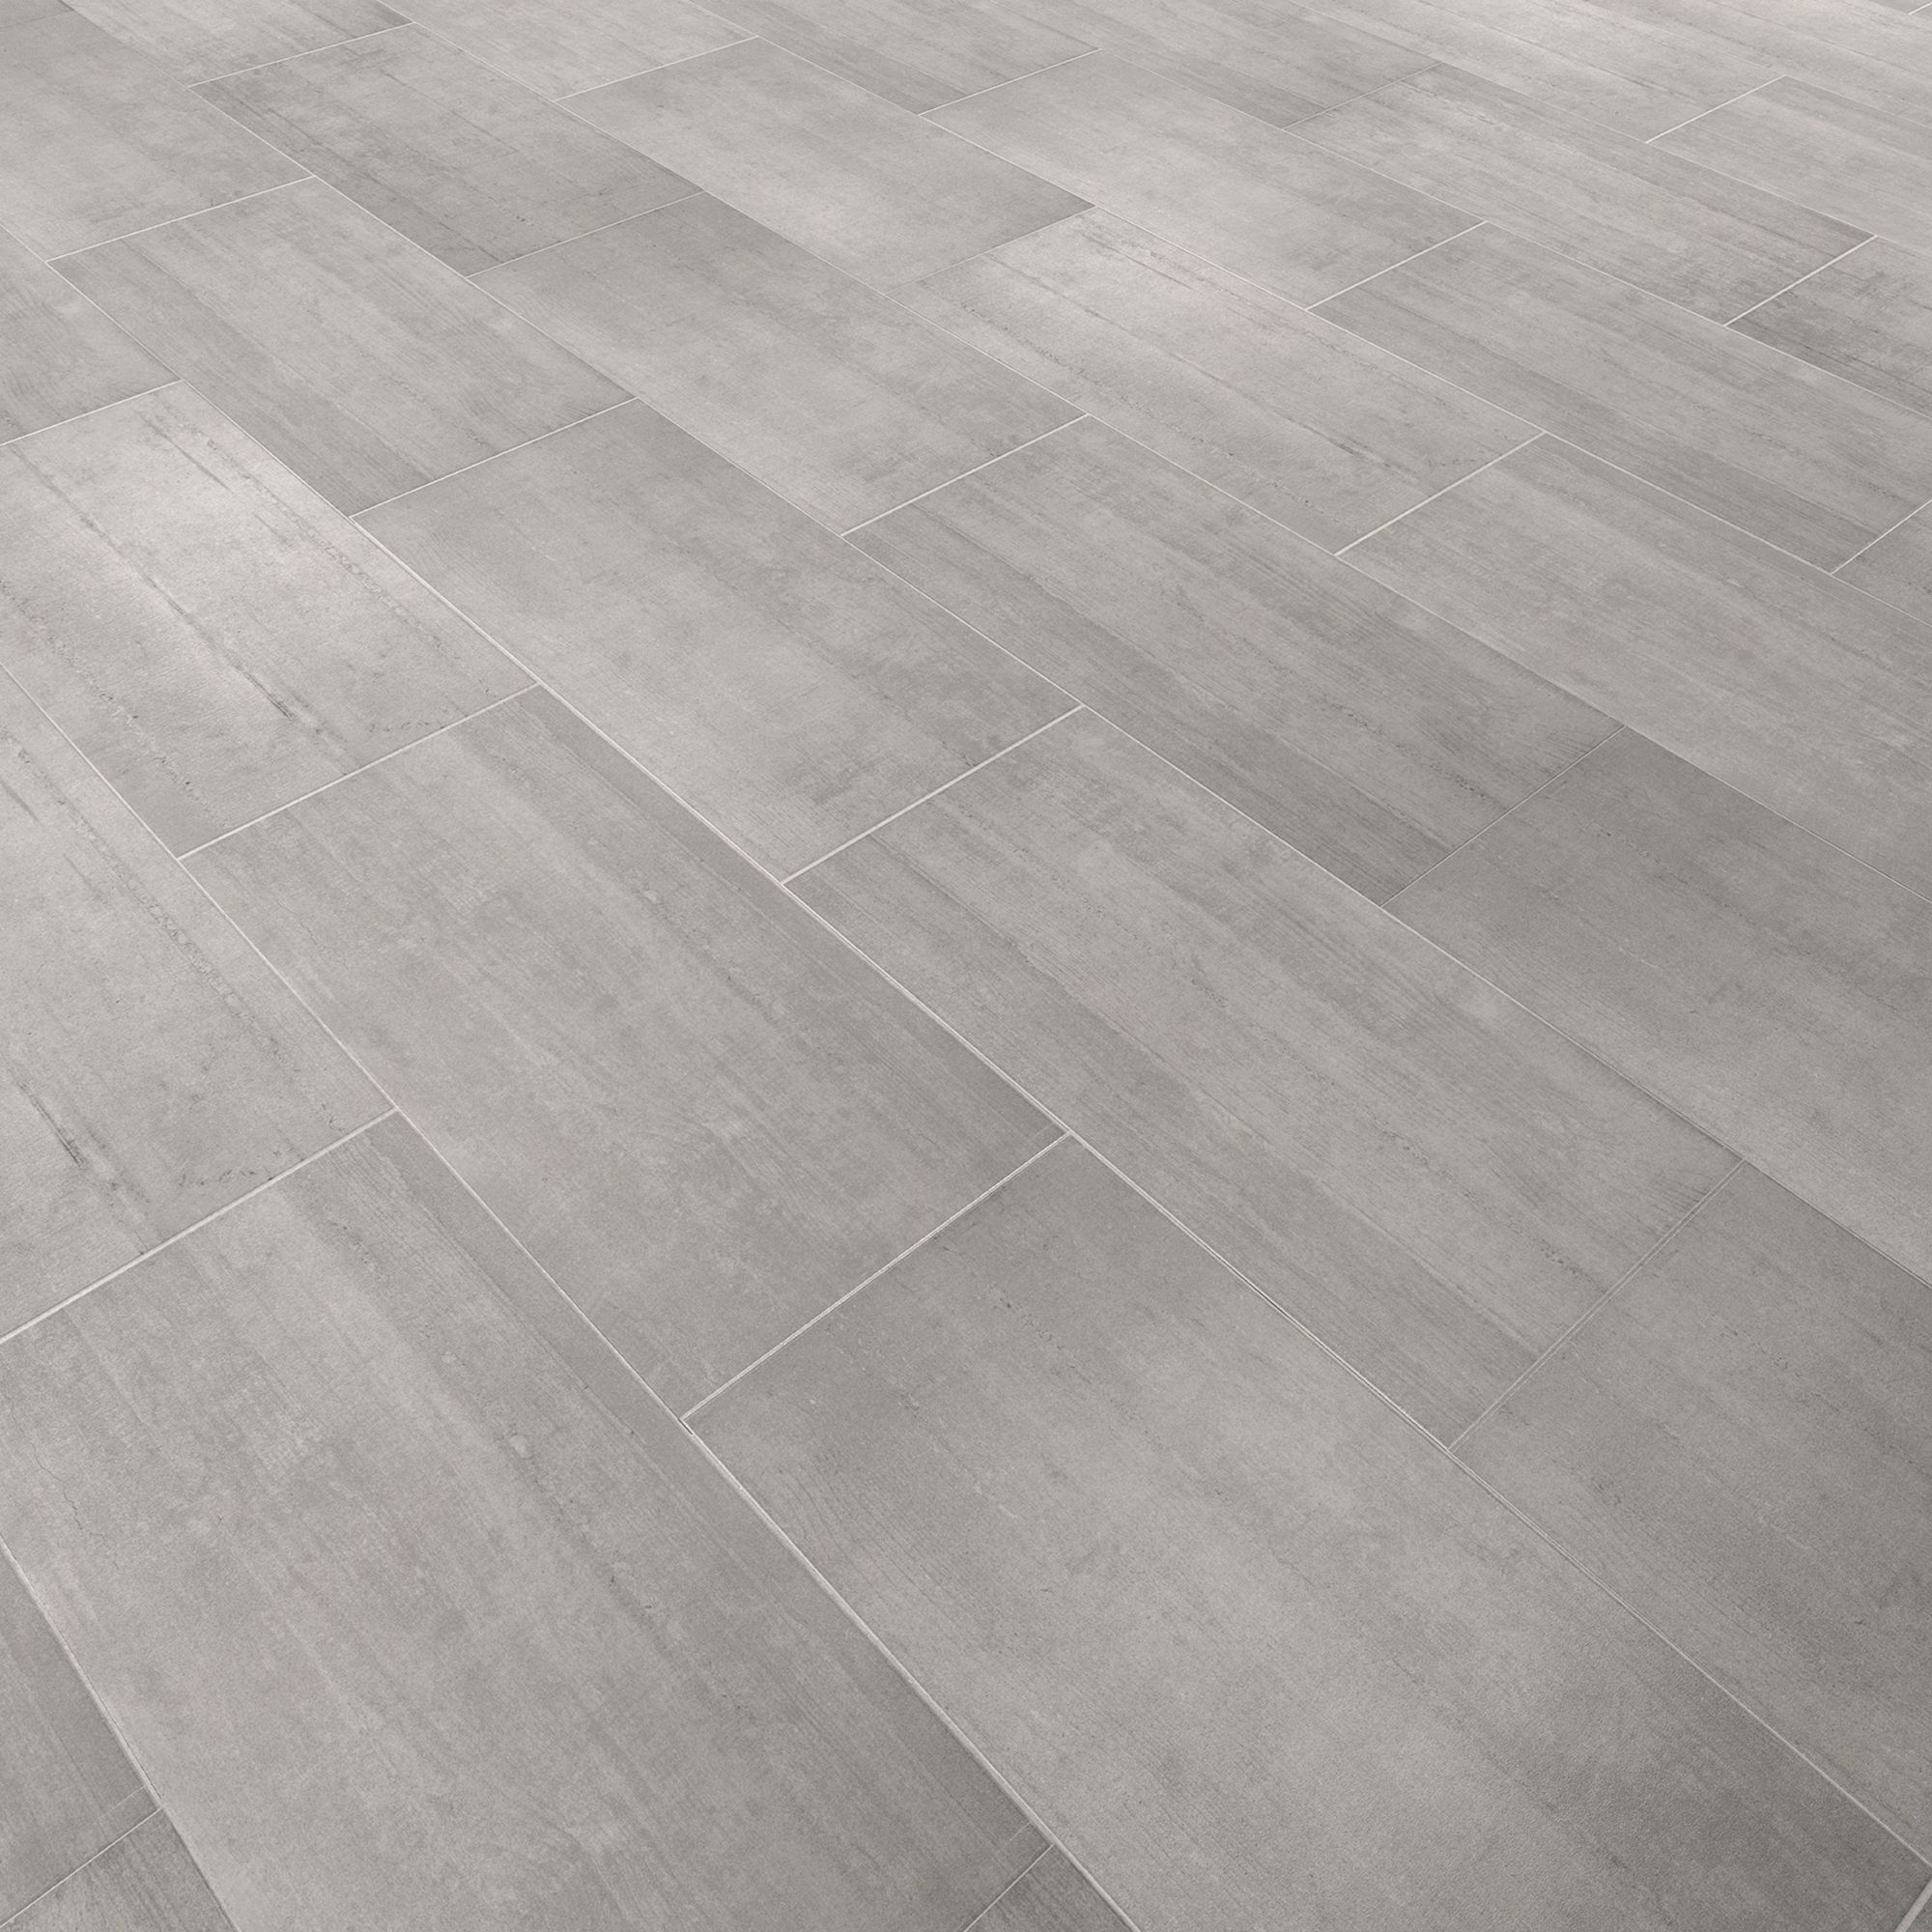 Gray Concrete Flooring : Leggiero grey concrete effect laminate flooring m²